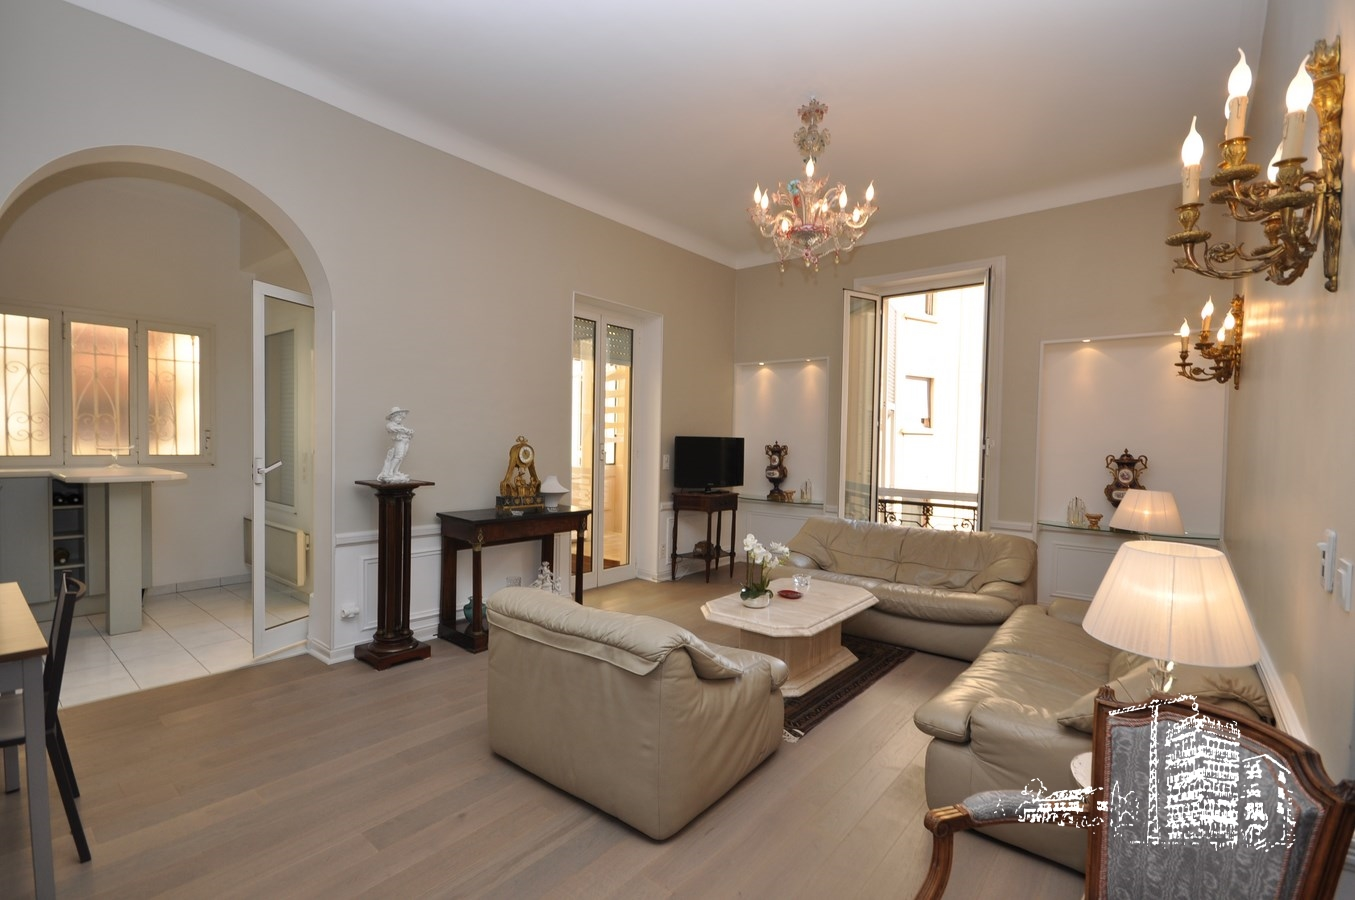 Townhouse for Sale at Villa near the center Other Monte Carlo, Monte Carlo 98000 Monaco